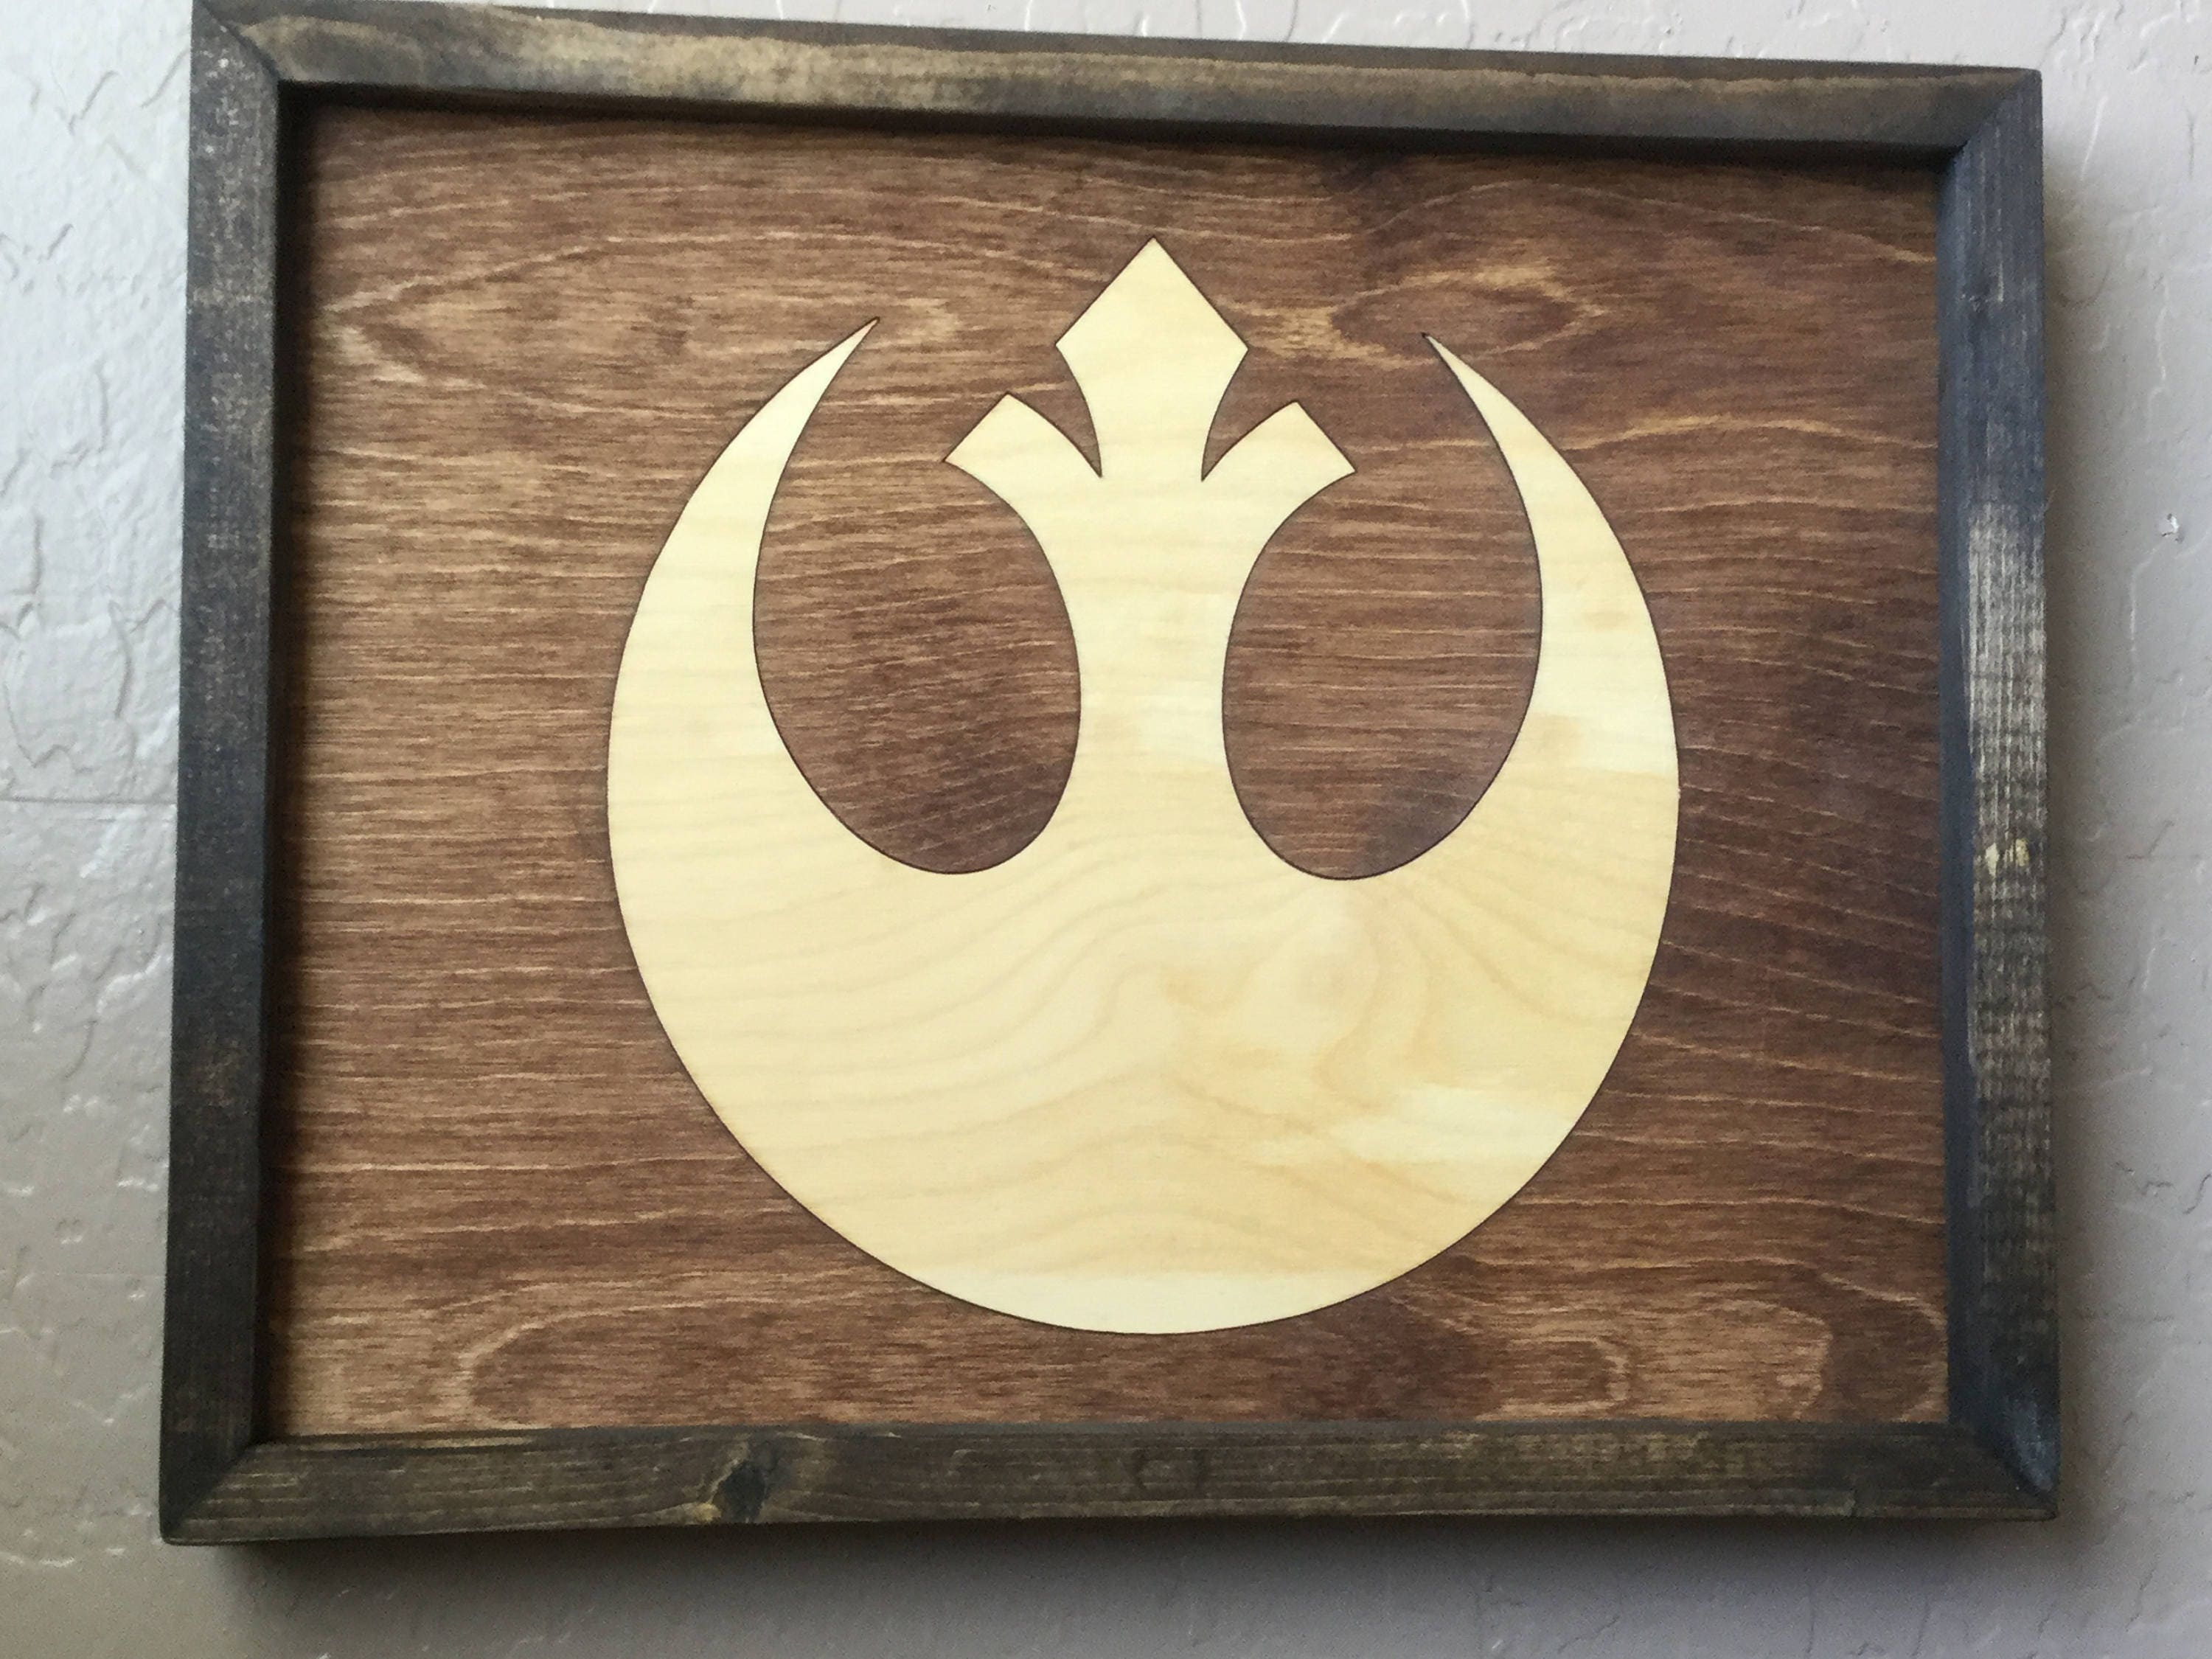 Star Wars Rebel Alliance Wooden Inlay Wall Art